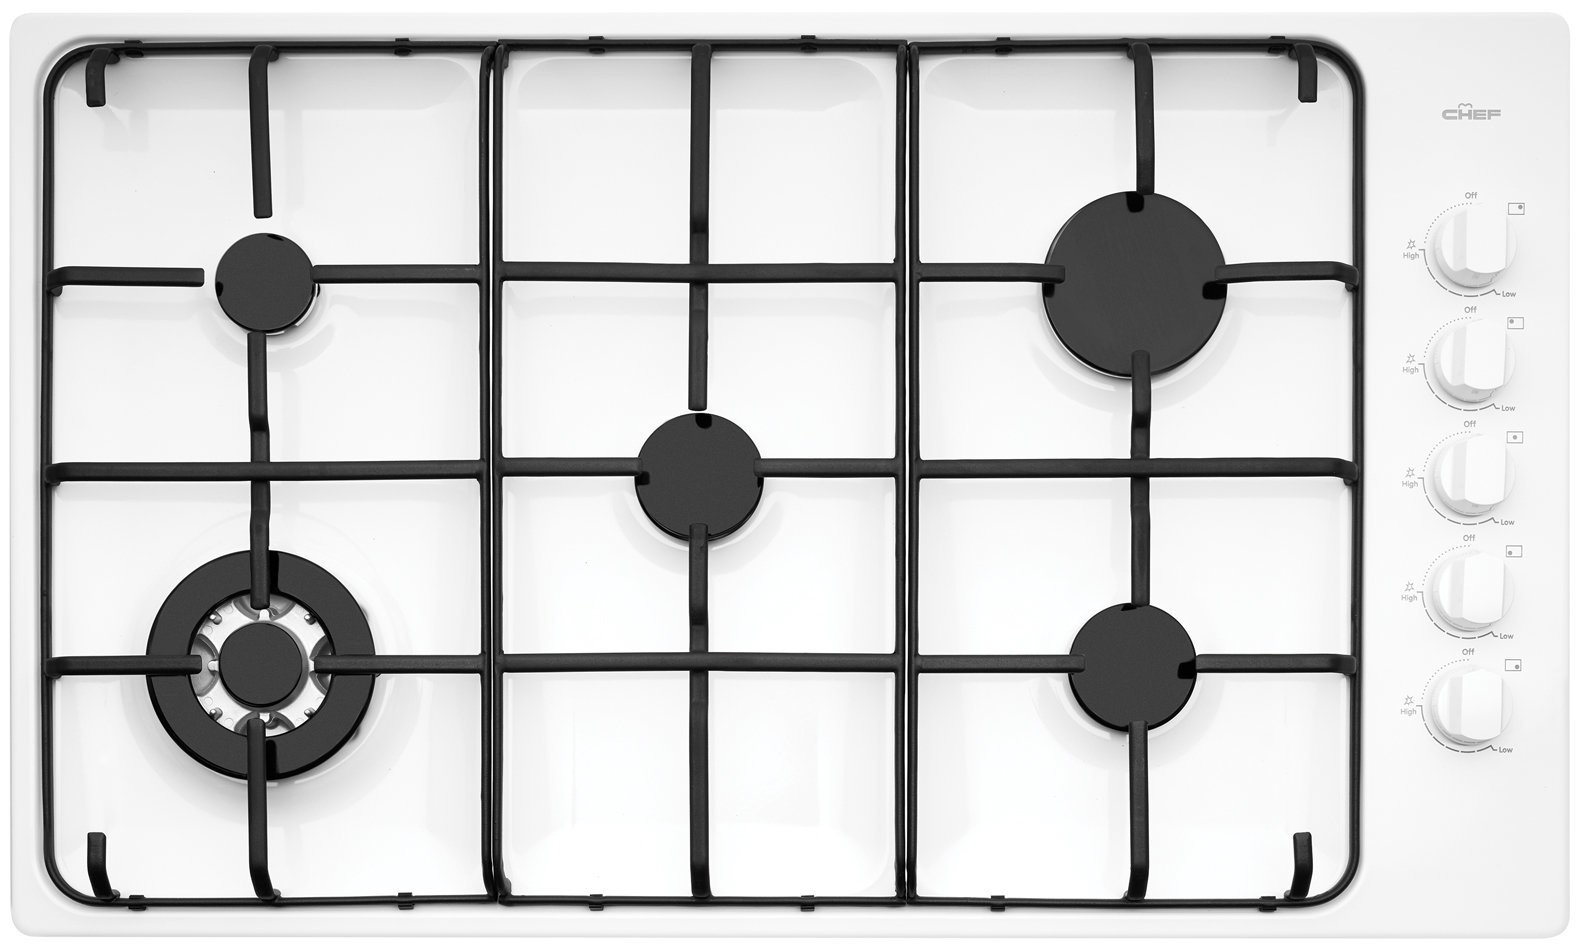 Chef CHG956WB Kitchen Cooktop